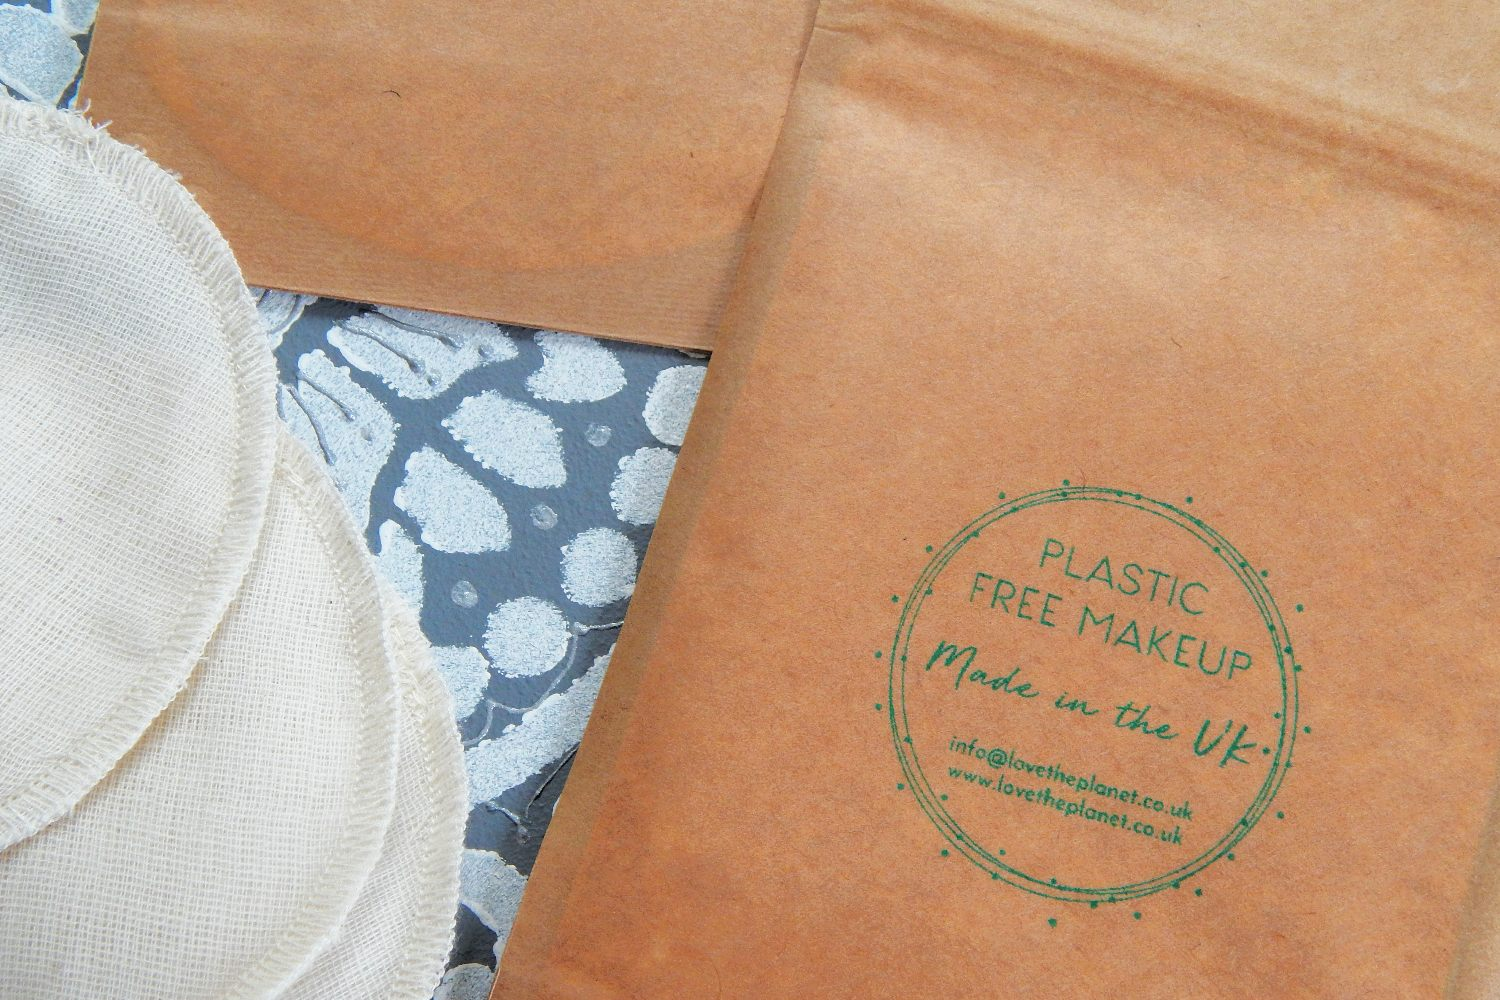 Love the Planet's packaging is stamped with 'Plastic Free Makeup, made in the UK'